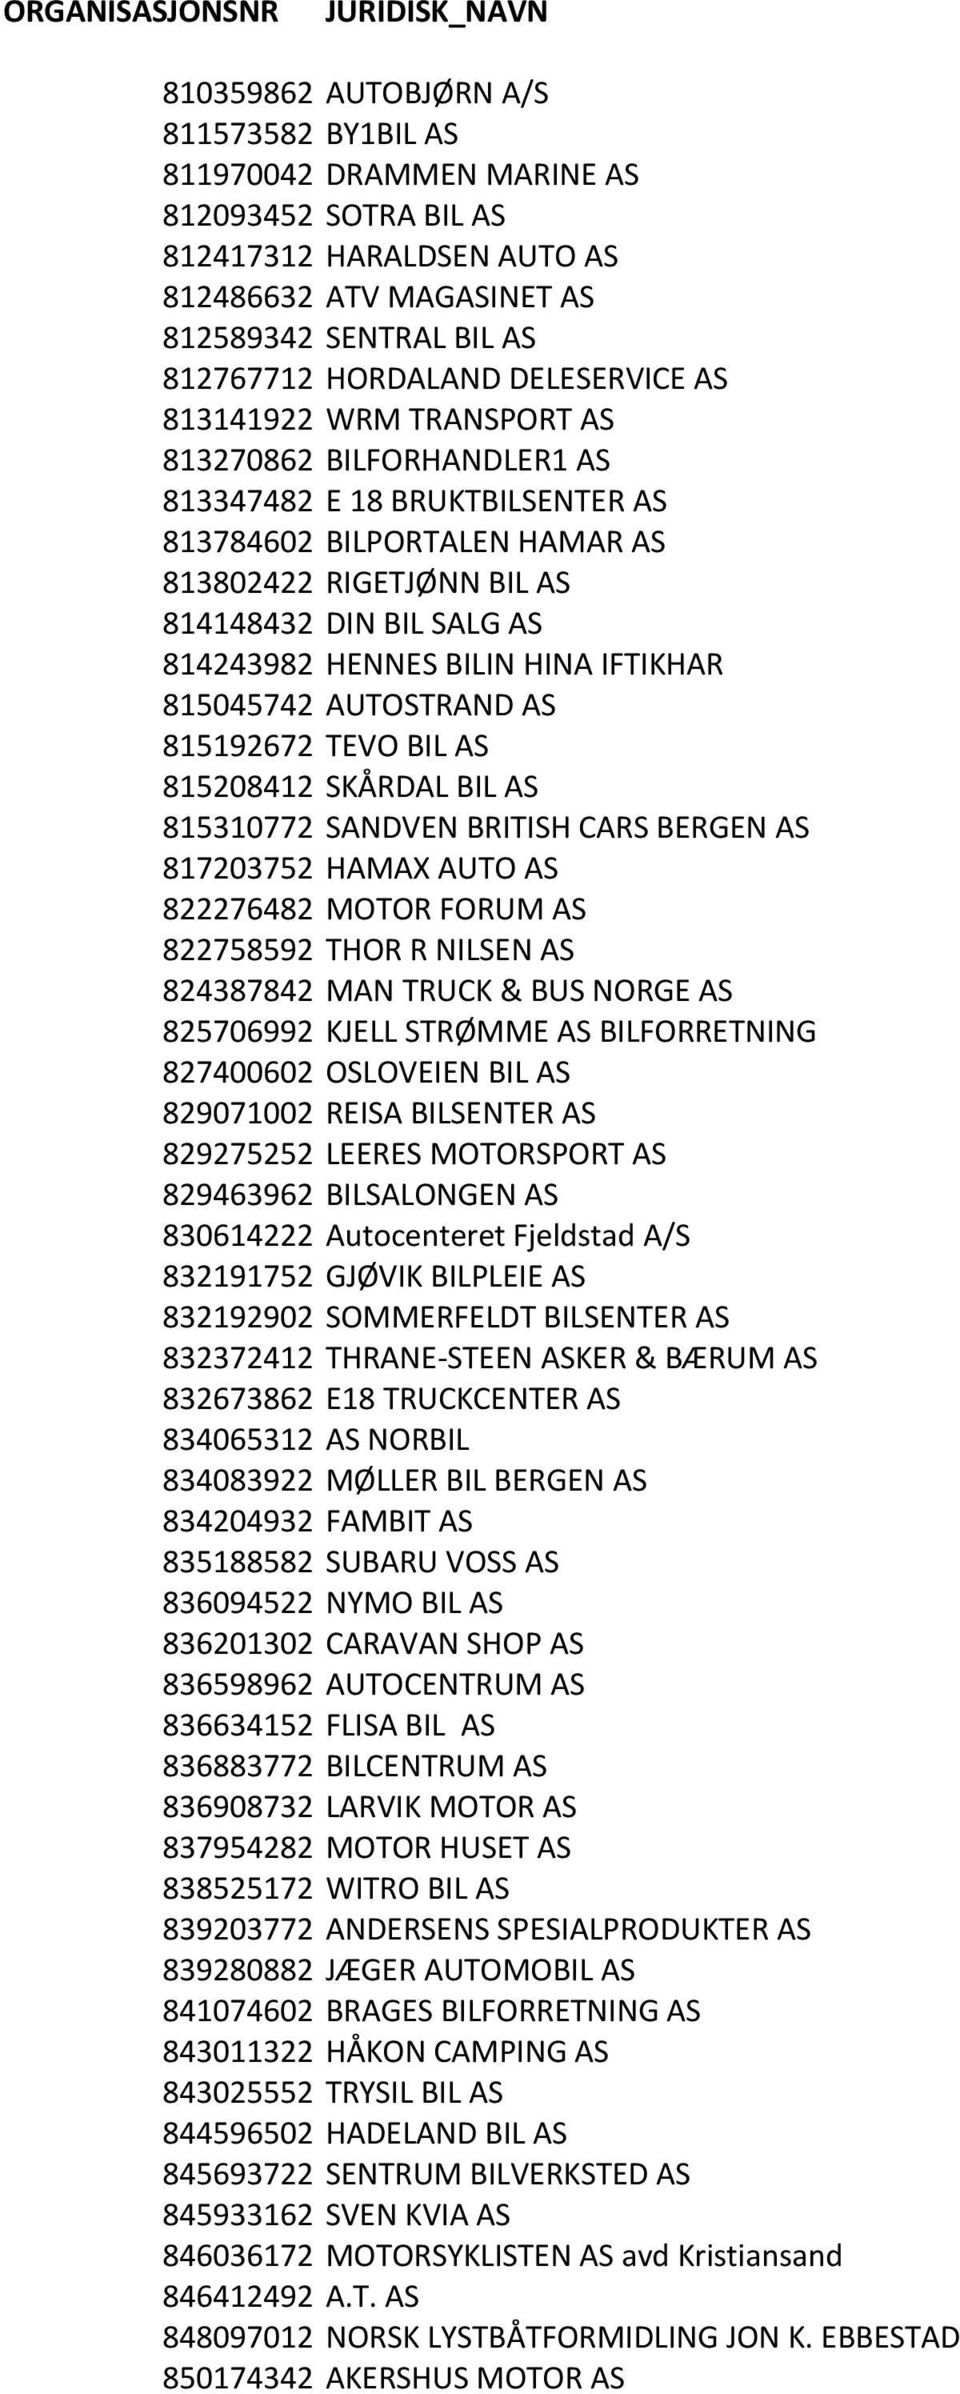 DIN BIL SALG AS 814243982 HENNES BILIN HINA IFTIKHAR 815045742 AUTOSTRAND AS 815192672 TEVO BIL AS 815208412 SKÅRDAL BIL AS 815310772 SANDVEN BRITISH CARS BERGEN AS 817203752 HAMAX AUTO AS 822276482